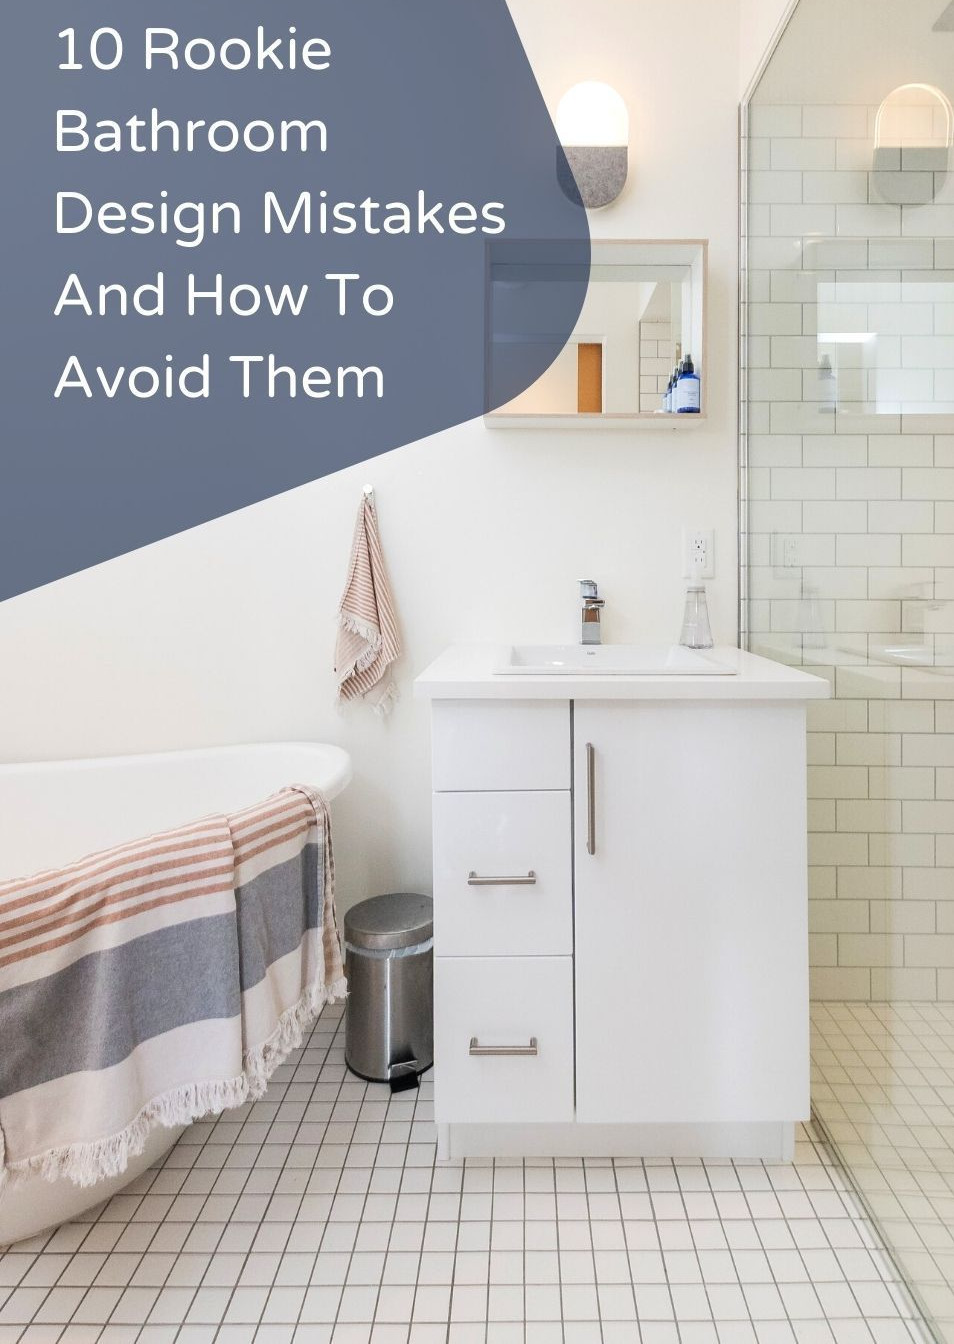 Mistakes to avoid designing a bathroom